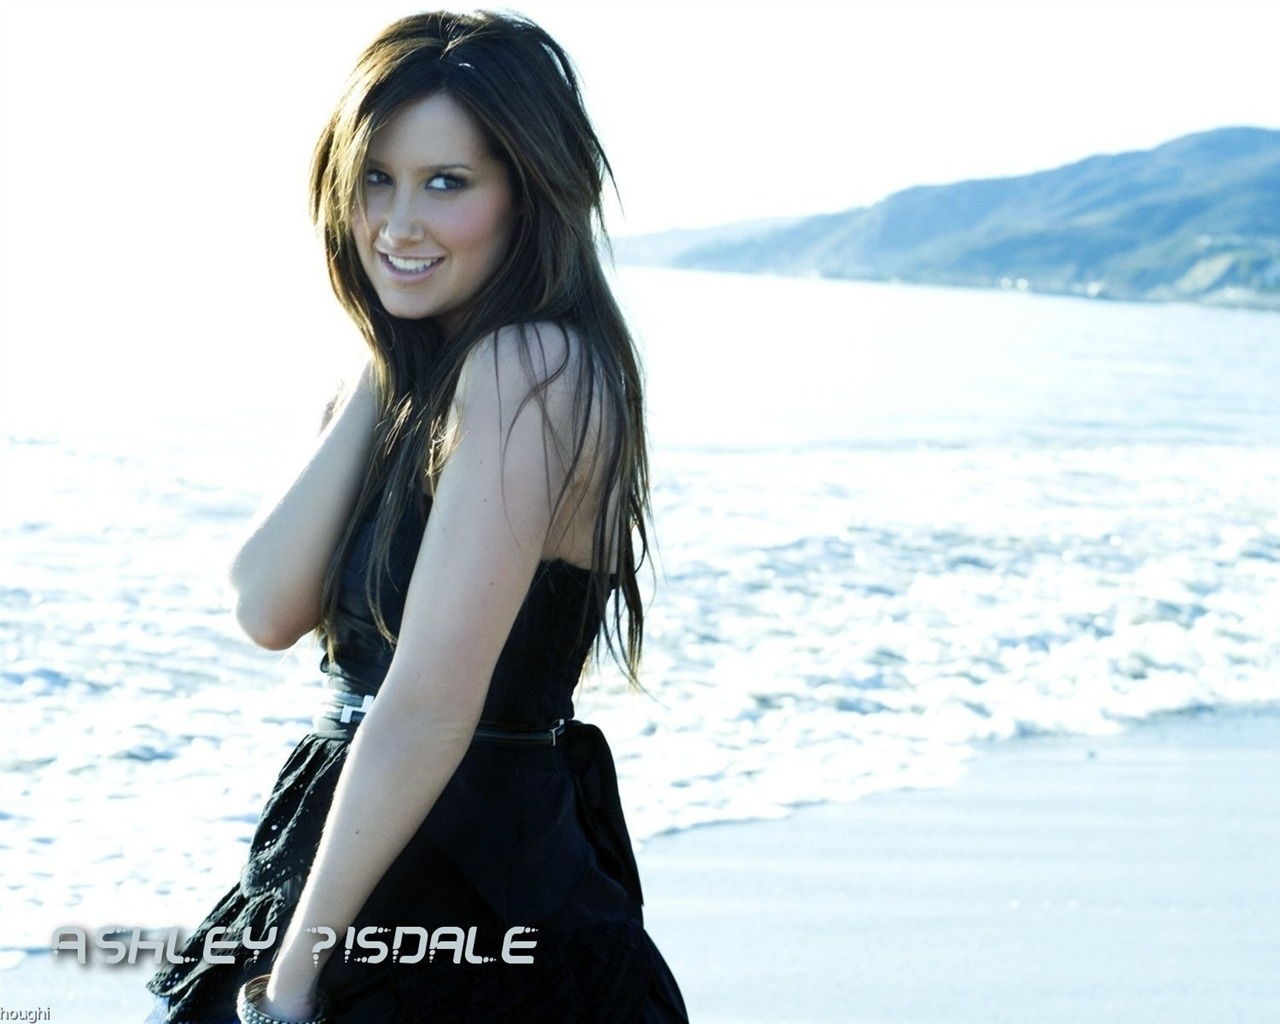 Ashley Tisdale #027 - 1280x1024 Wallpapers Pictures Photos Images